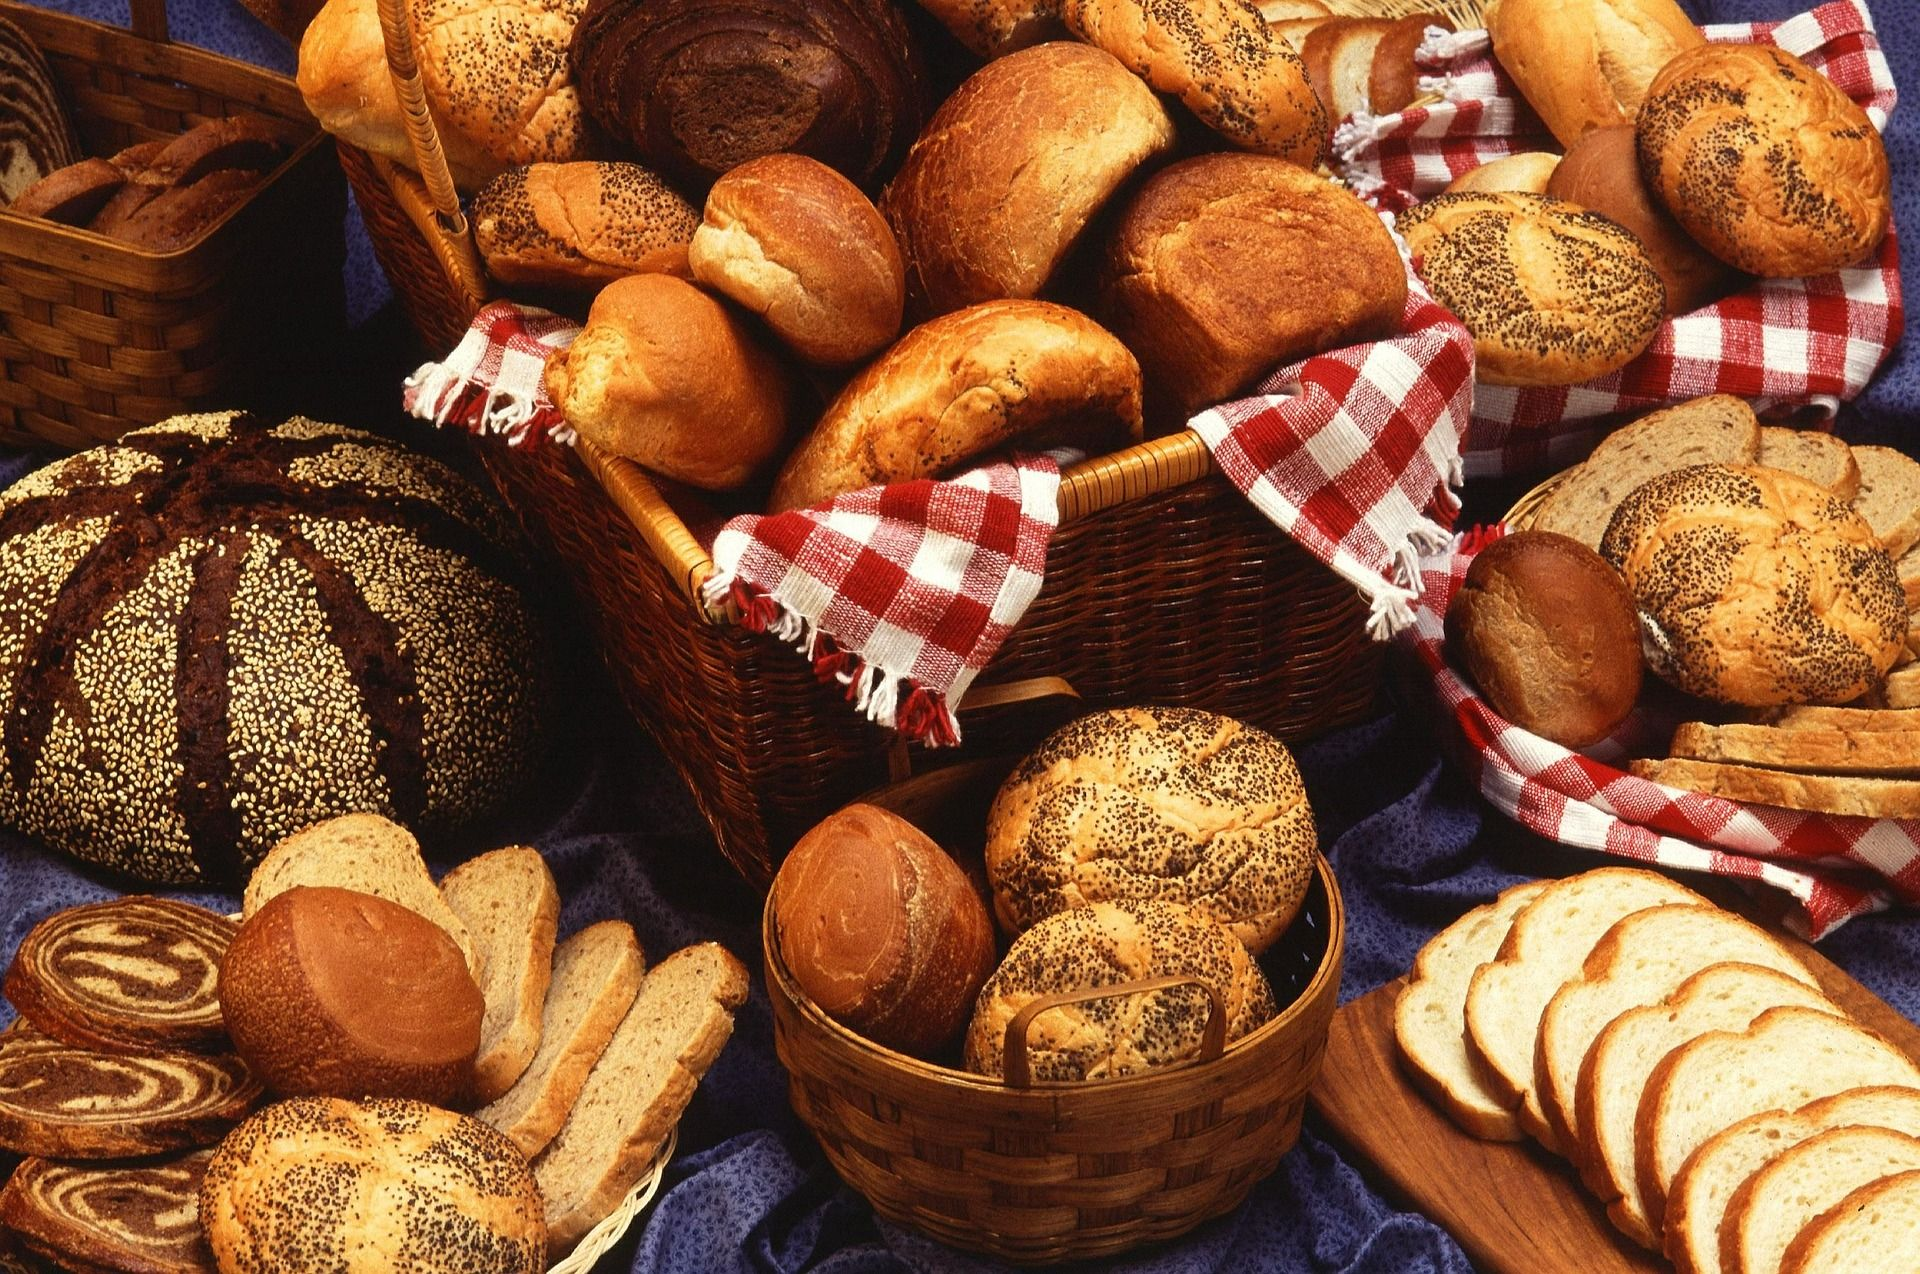 Traditonal Grain-Based Breads